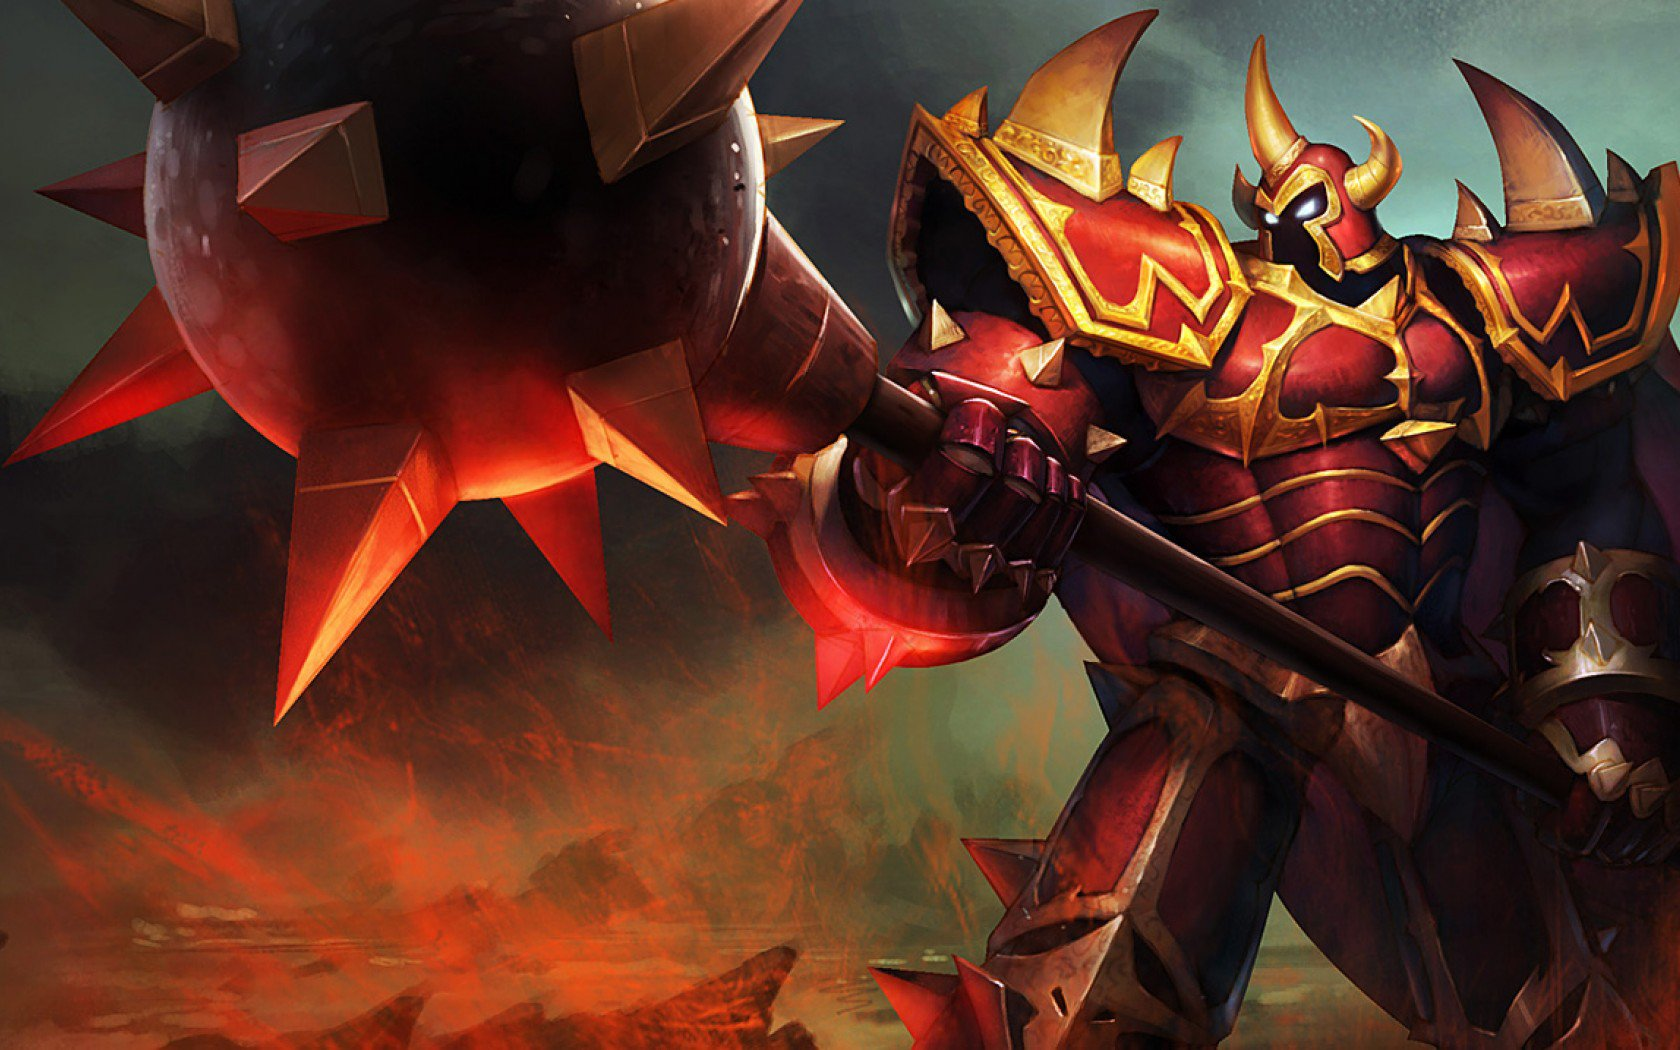 25 mordekaiser league of legends hd wallpapers background hd wallpaper background image id403302 voltagebd Images